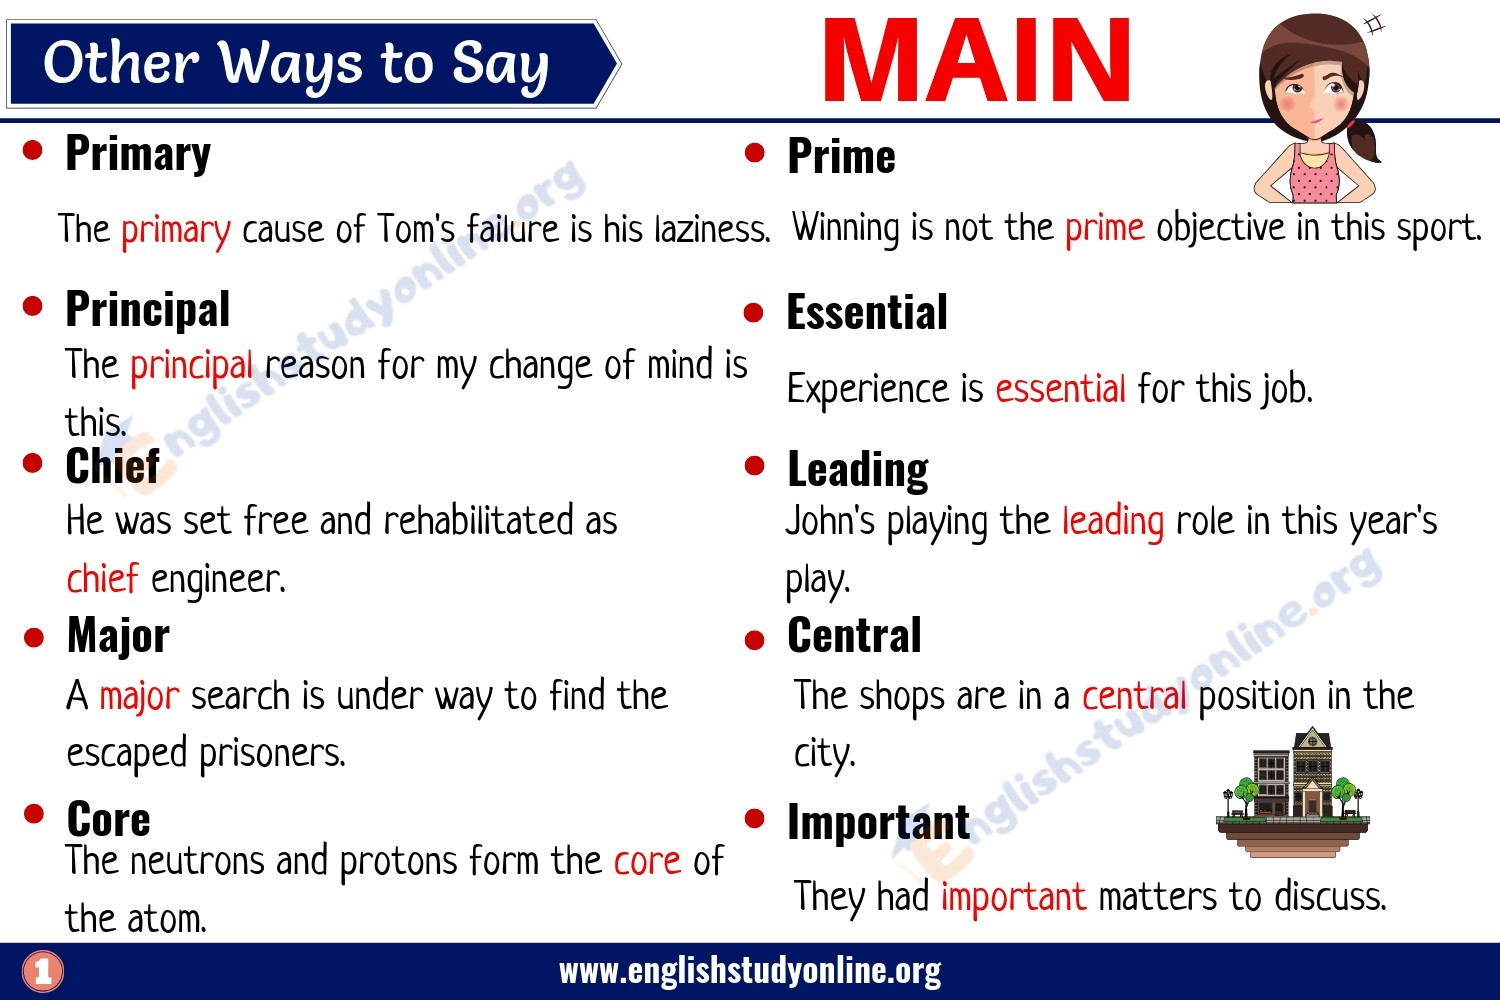 Main Synonym: 25 Useful Words to Use Instead of MAIN in